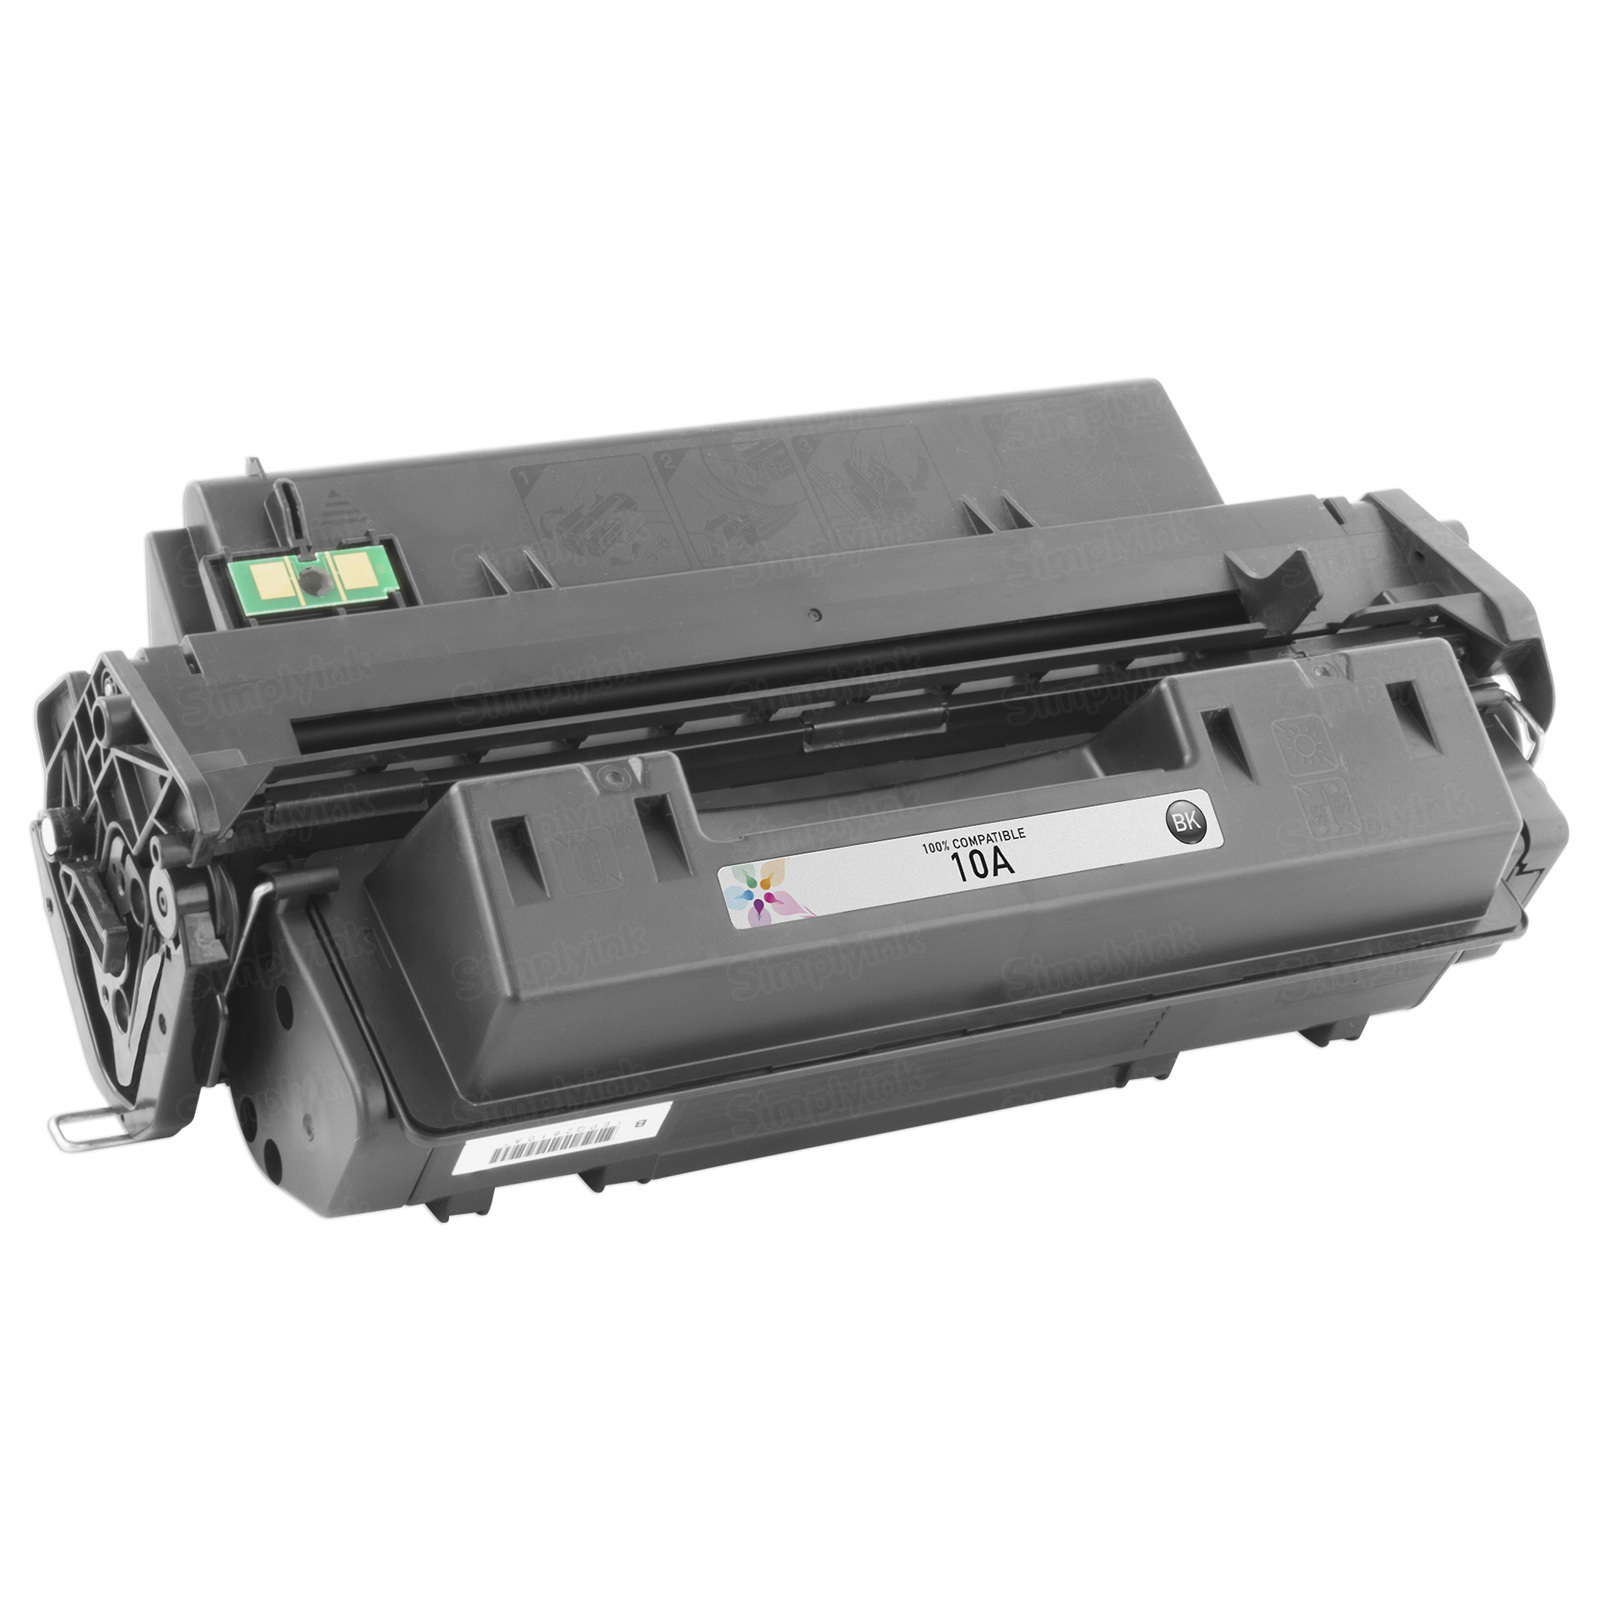 Remanufactured Replacement Black Laser Toner for HP 10A